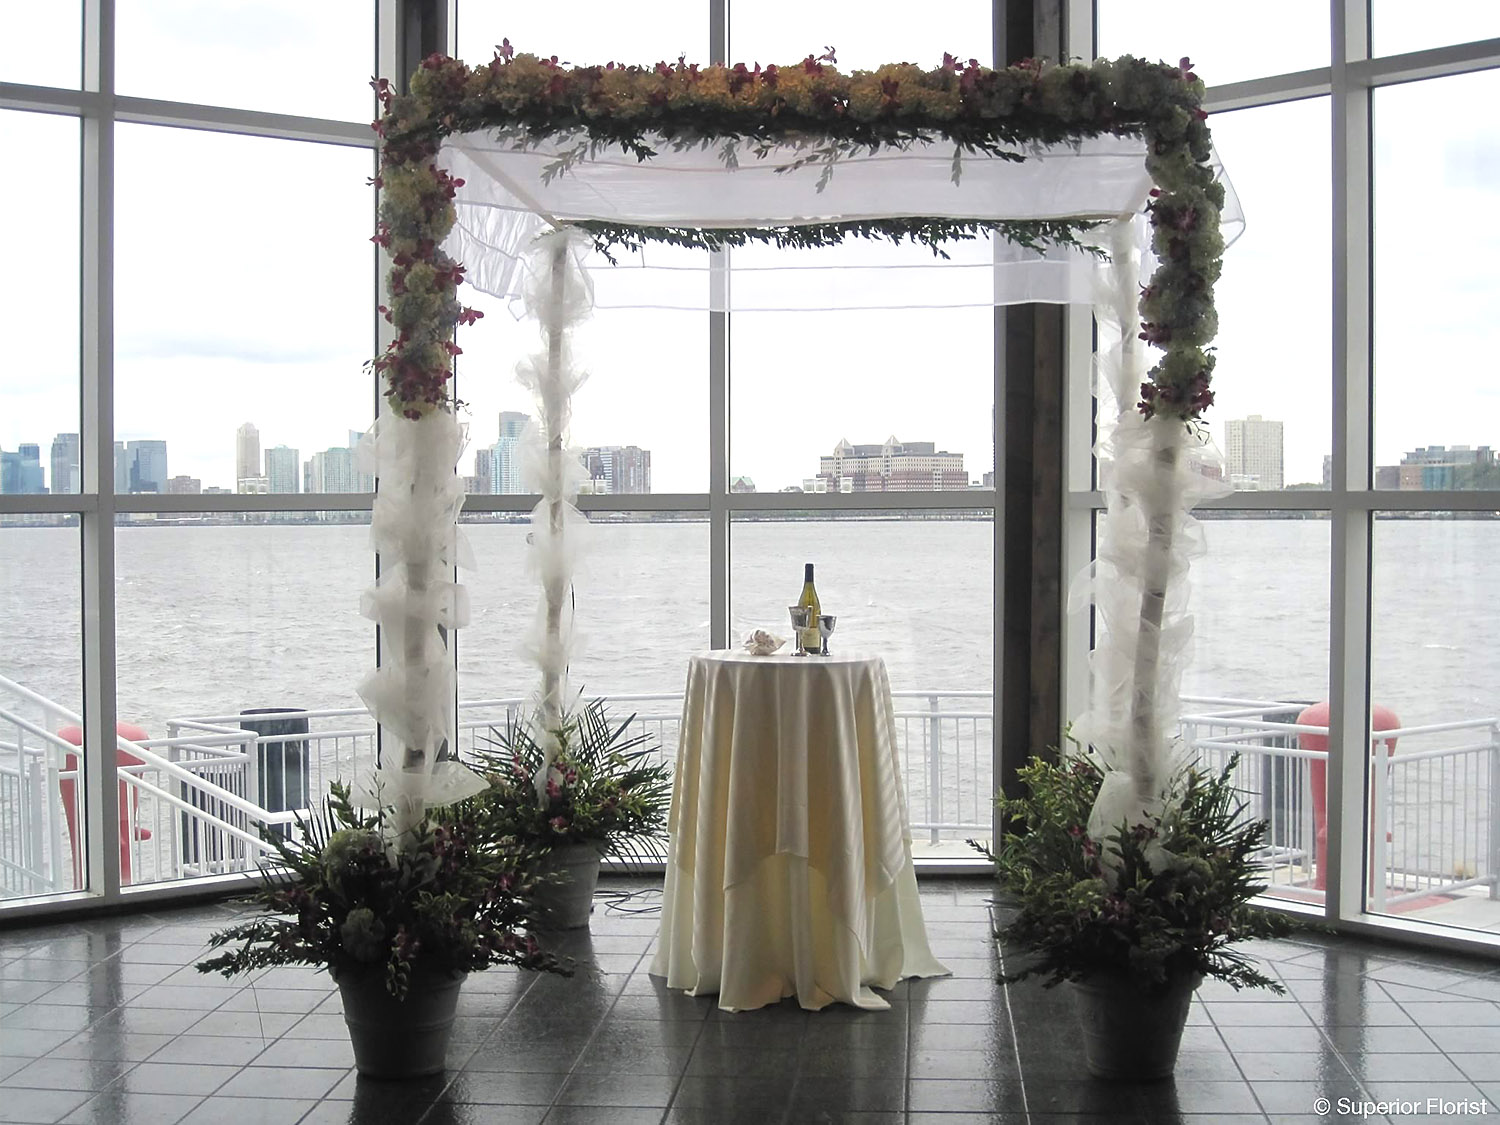 Superior Florist – Wedding Ceremony: Birch pole chuppah with white tulle fabric, garland of Hydrangea and Dendrobiums orchids. Complementing flowers at each base.